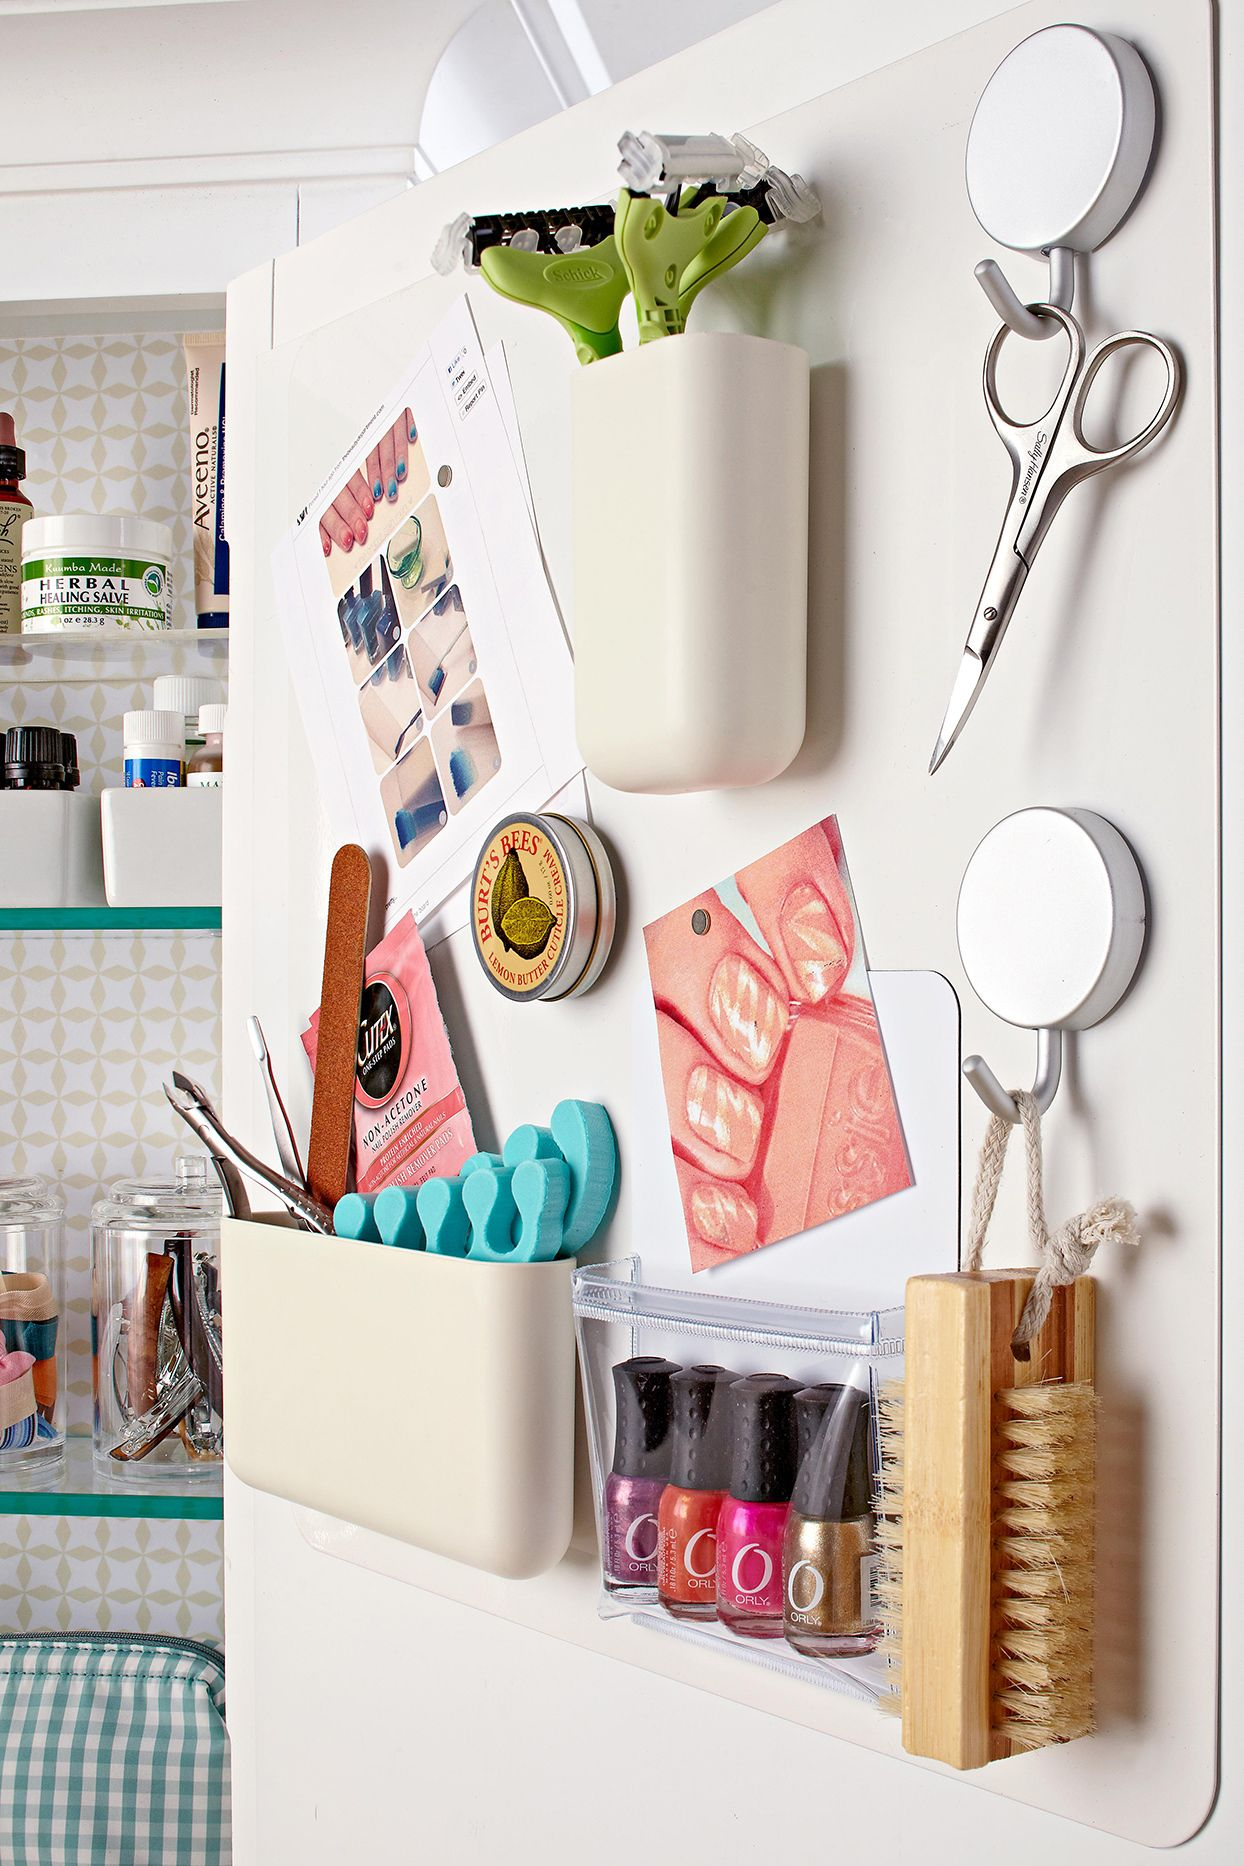 14 Small Space Hacks To Make The Most Of Your Tiny Bathroom In 2020 Diy Space Saving Bathroom Organization Diy Closet Organization Diy